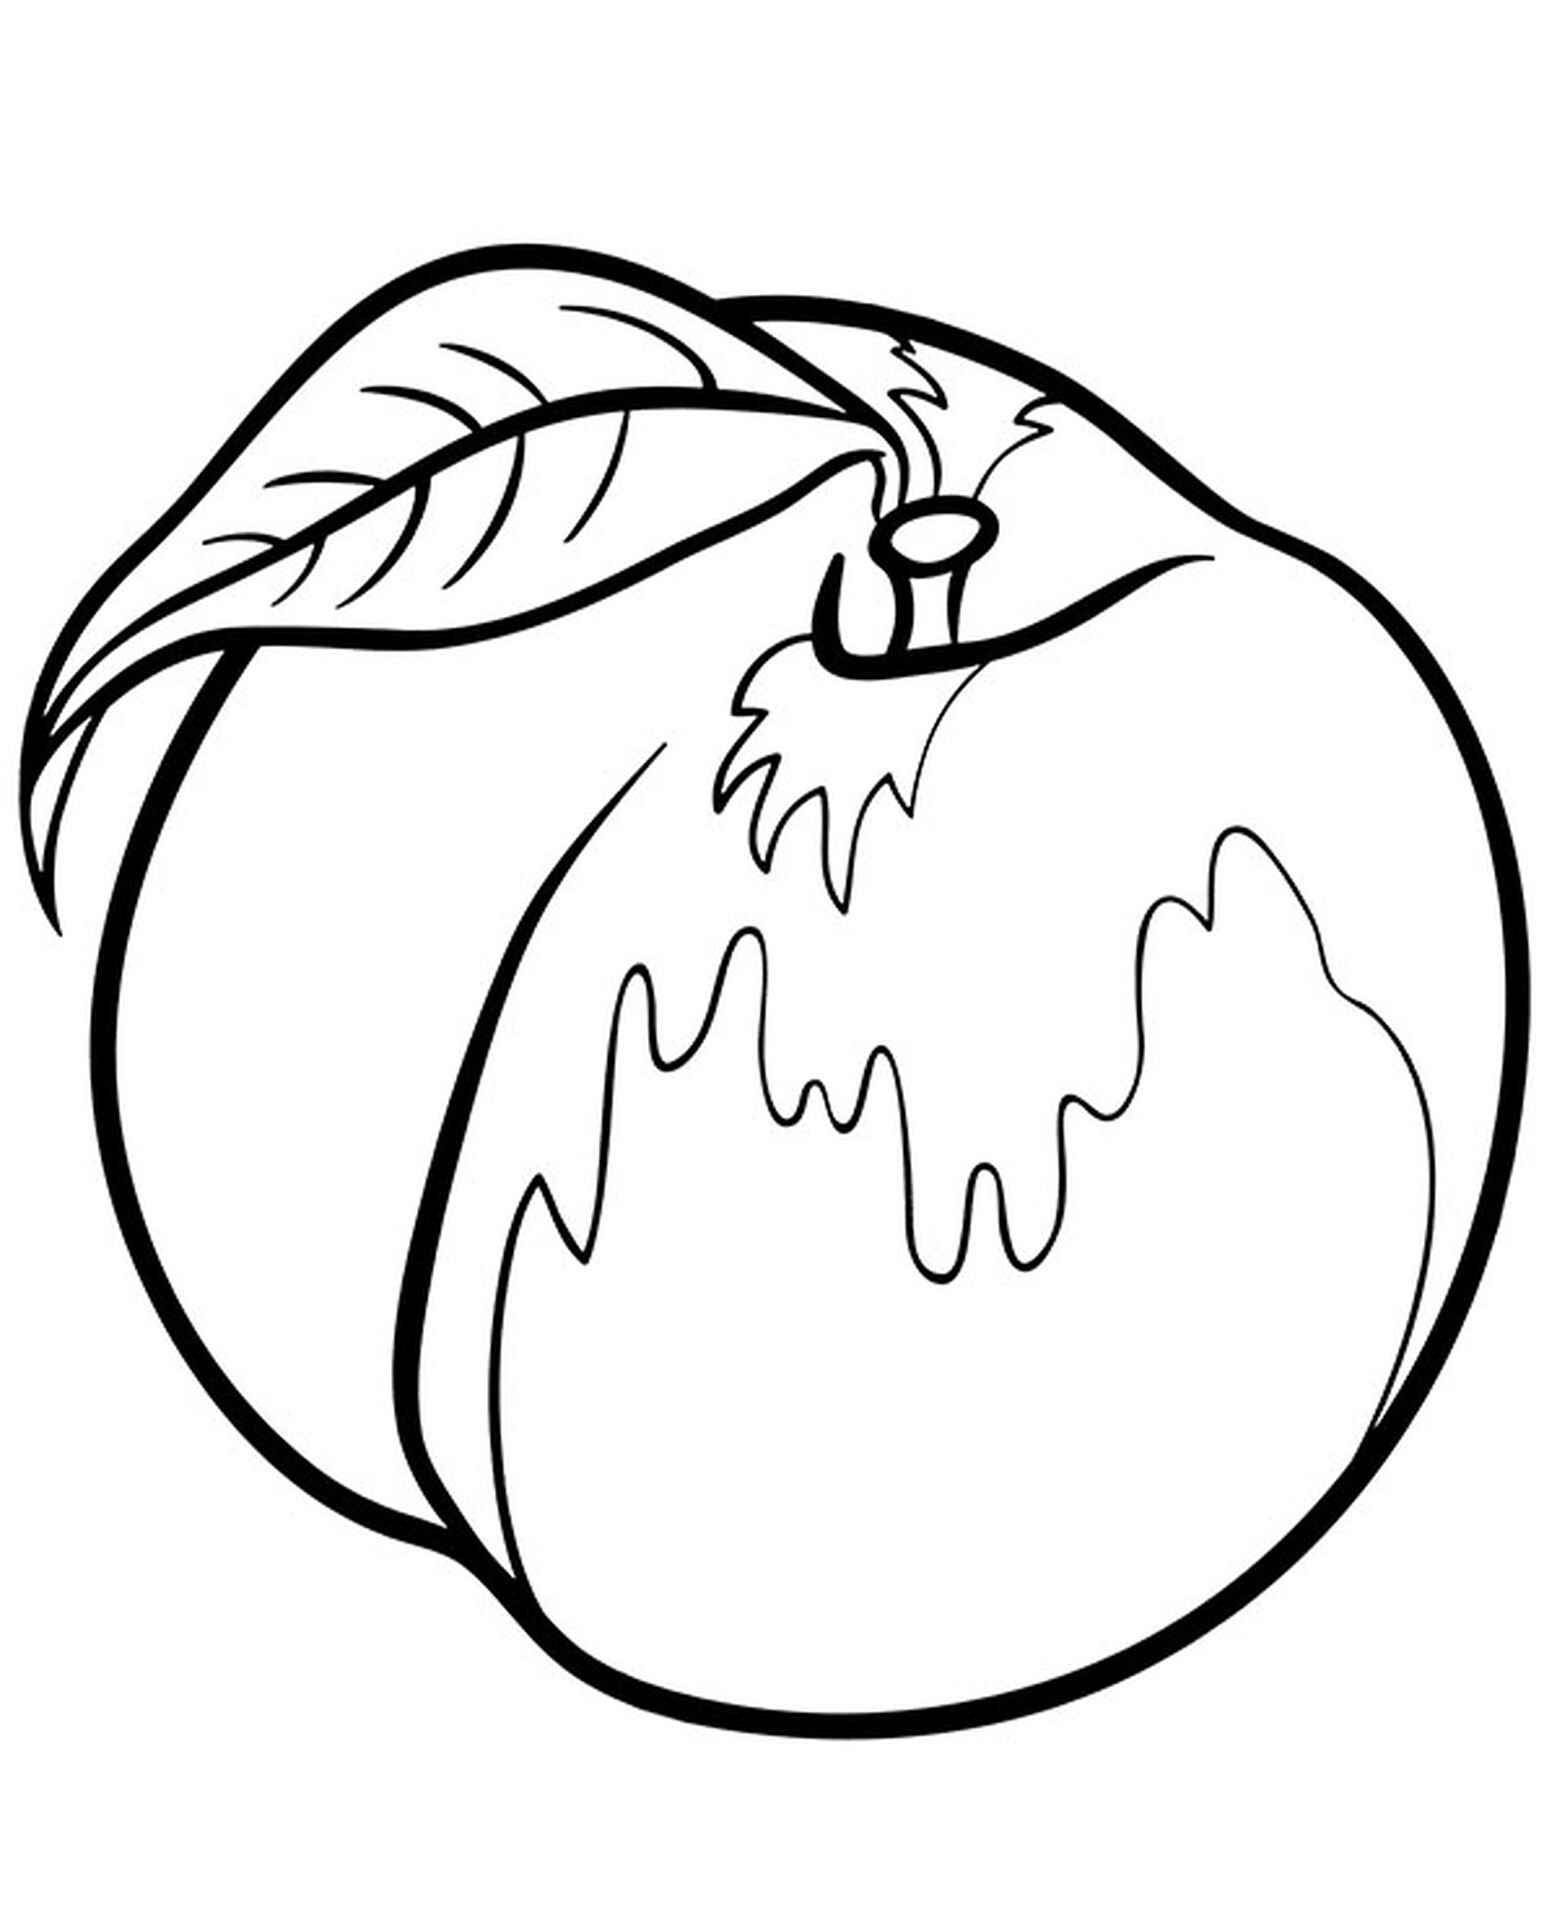 Beautiful Peach With A Leaf Coloring Page